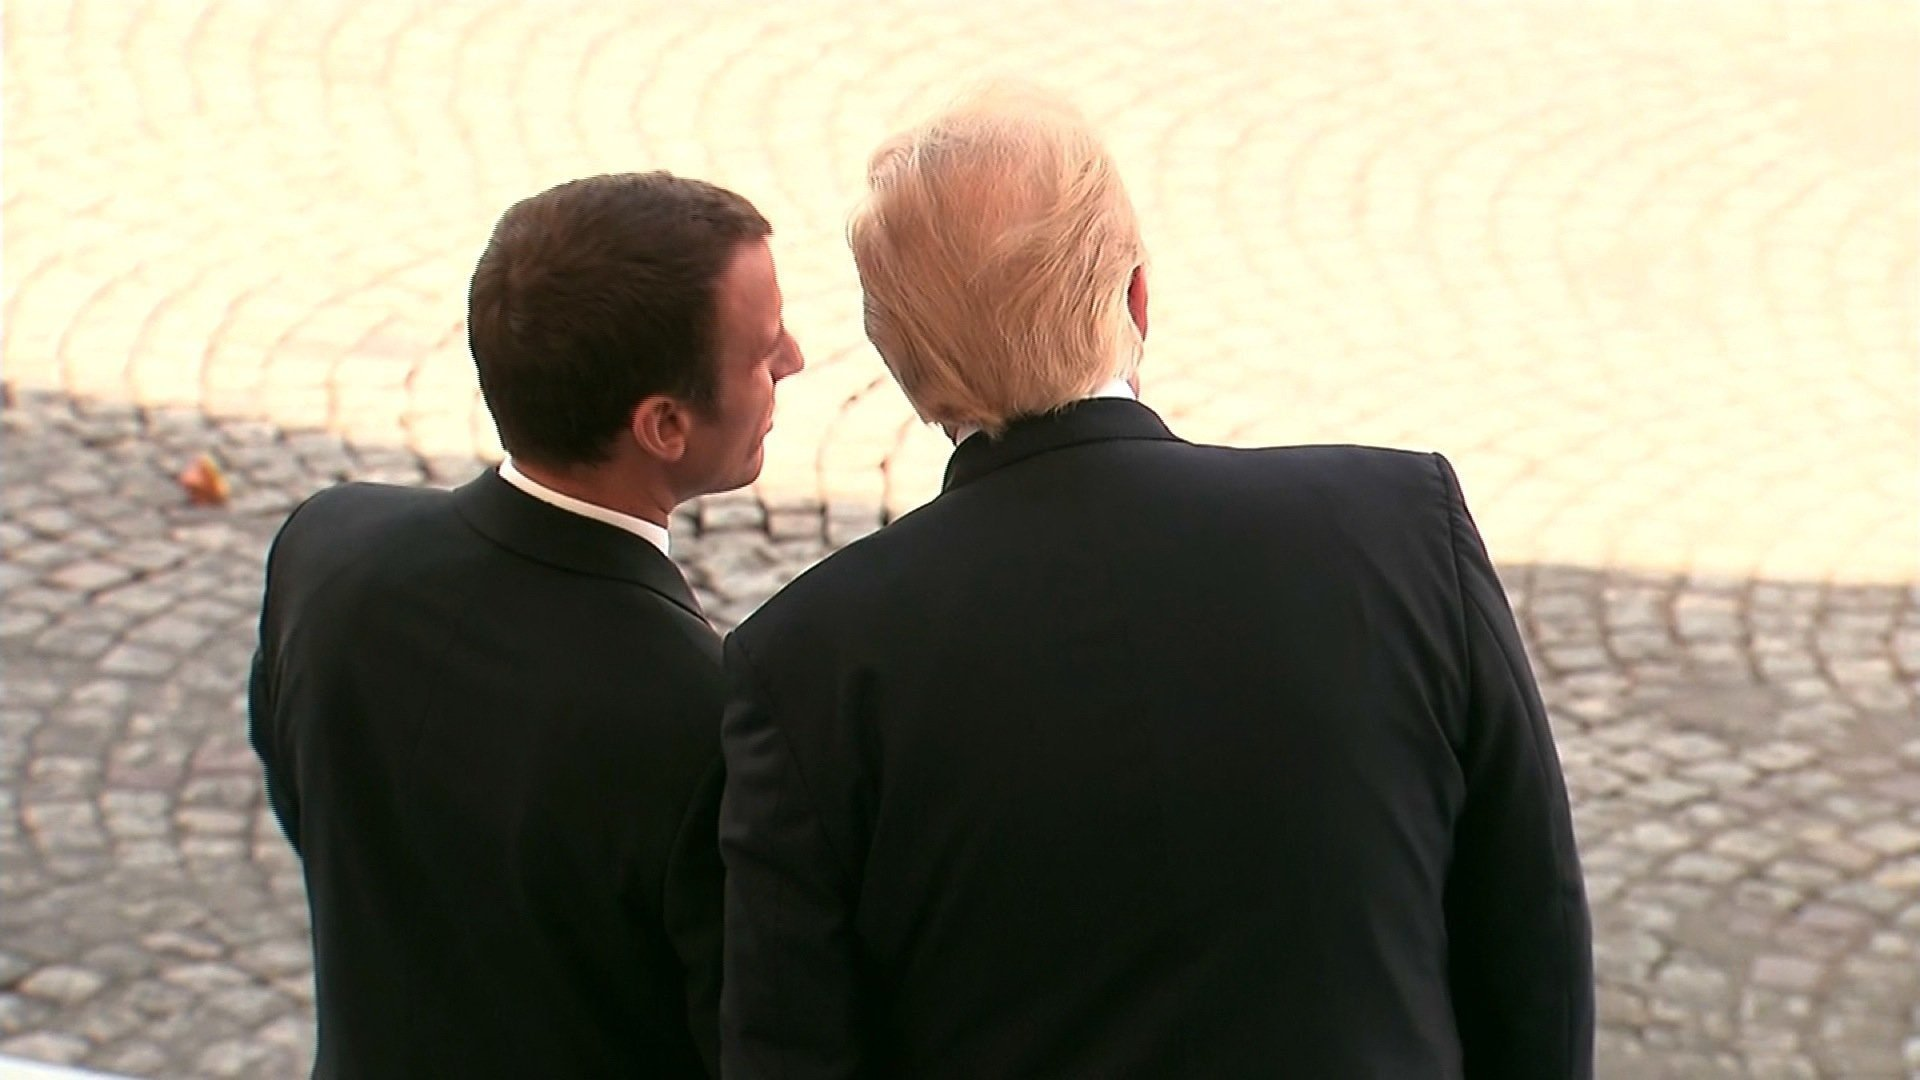 Paris Celebrates Bastille Day With Trump as Guest of Honor